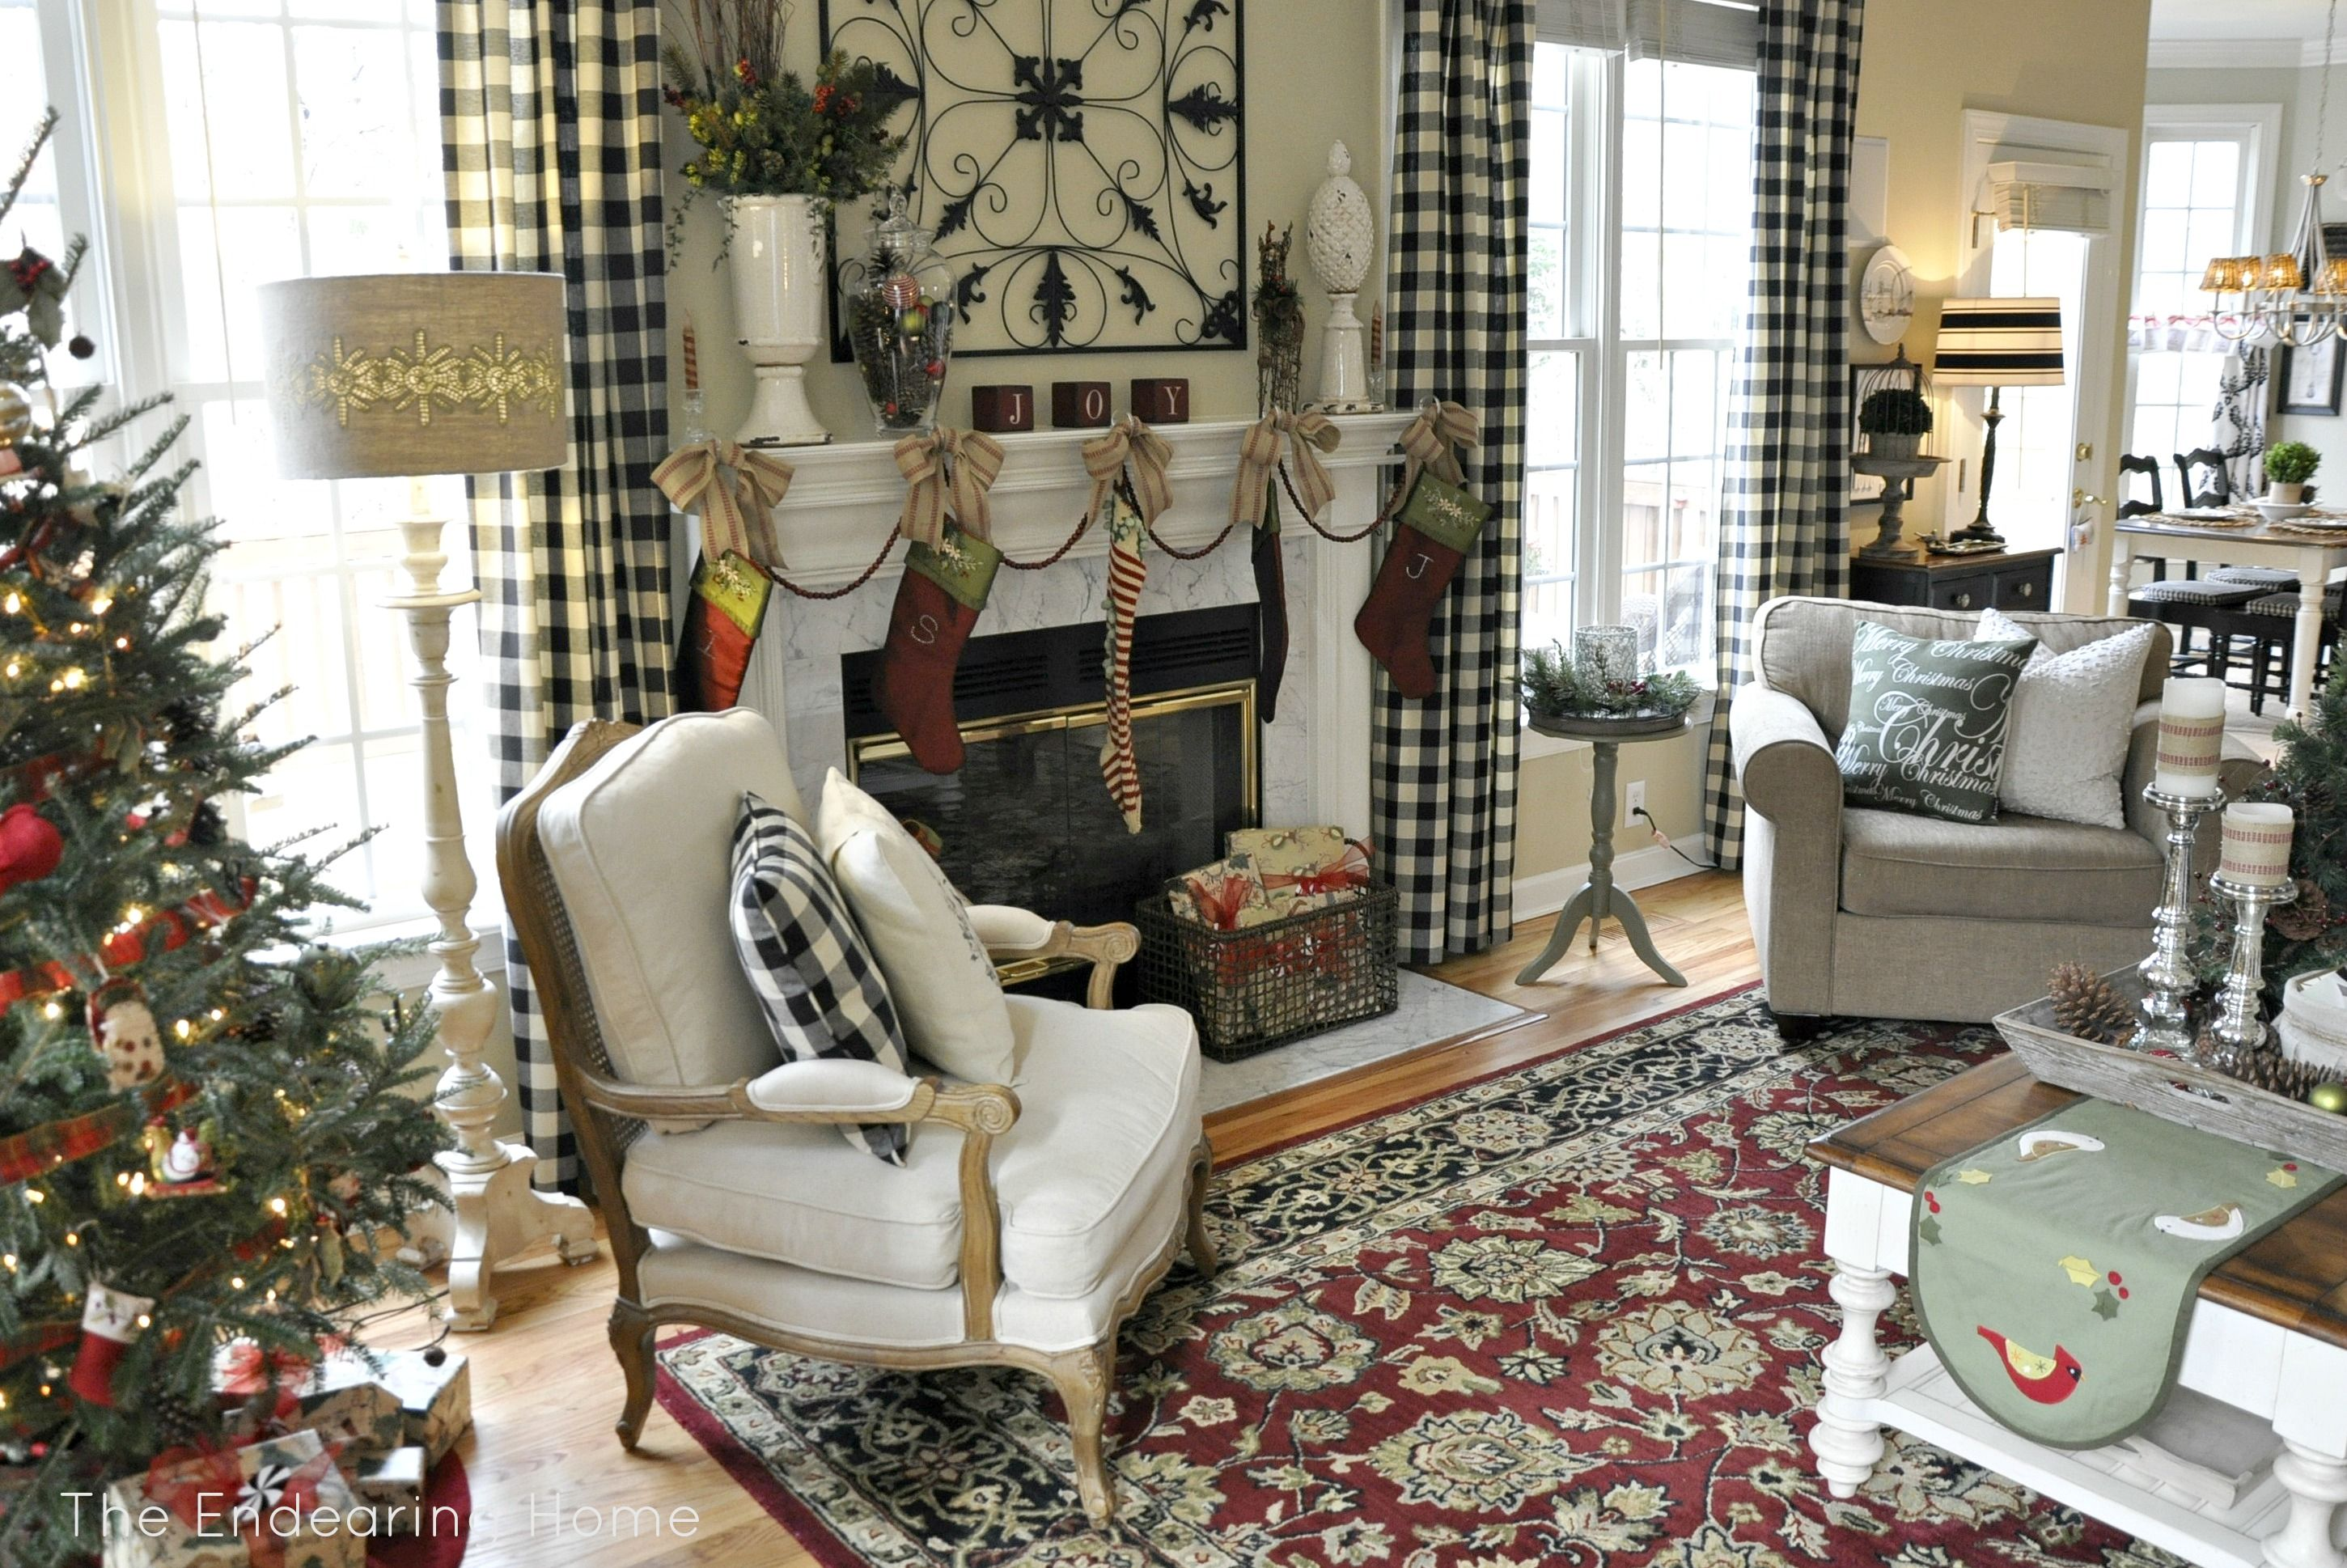 Black and white checked curtains - The Endearing Home Restyle Repurpose Reorganize Buffalo Check Curtains Living Room